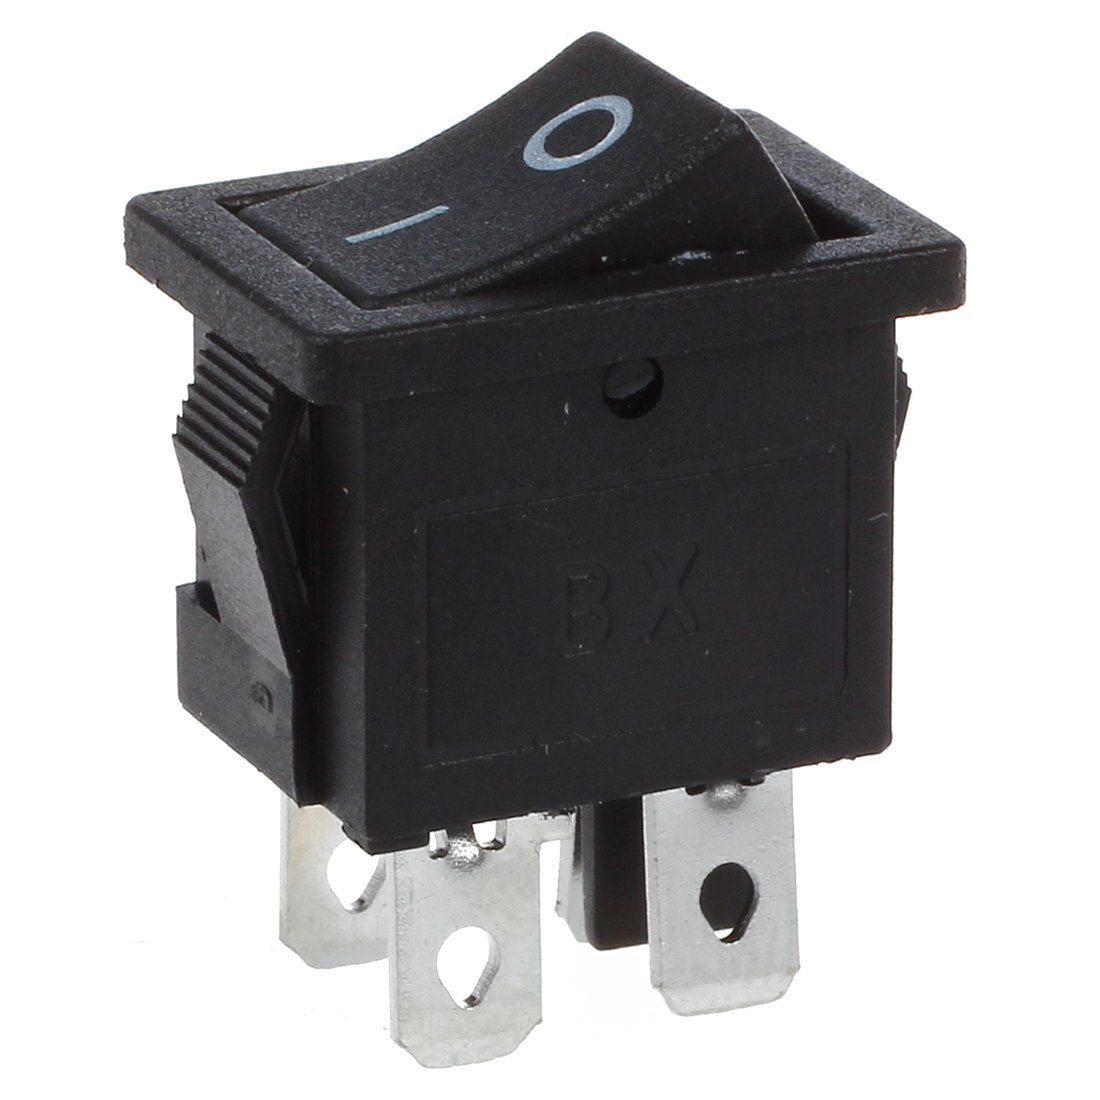 SODIAL(R) 10 Pcs x 4 Pin On-Off 2 Position DPST Boat Rocker Switches 10A/125V 6A/250V AC